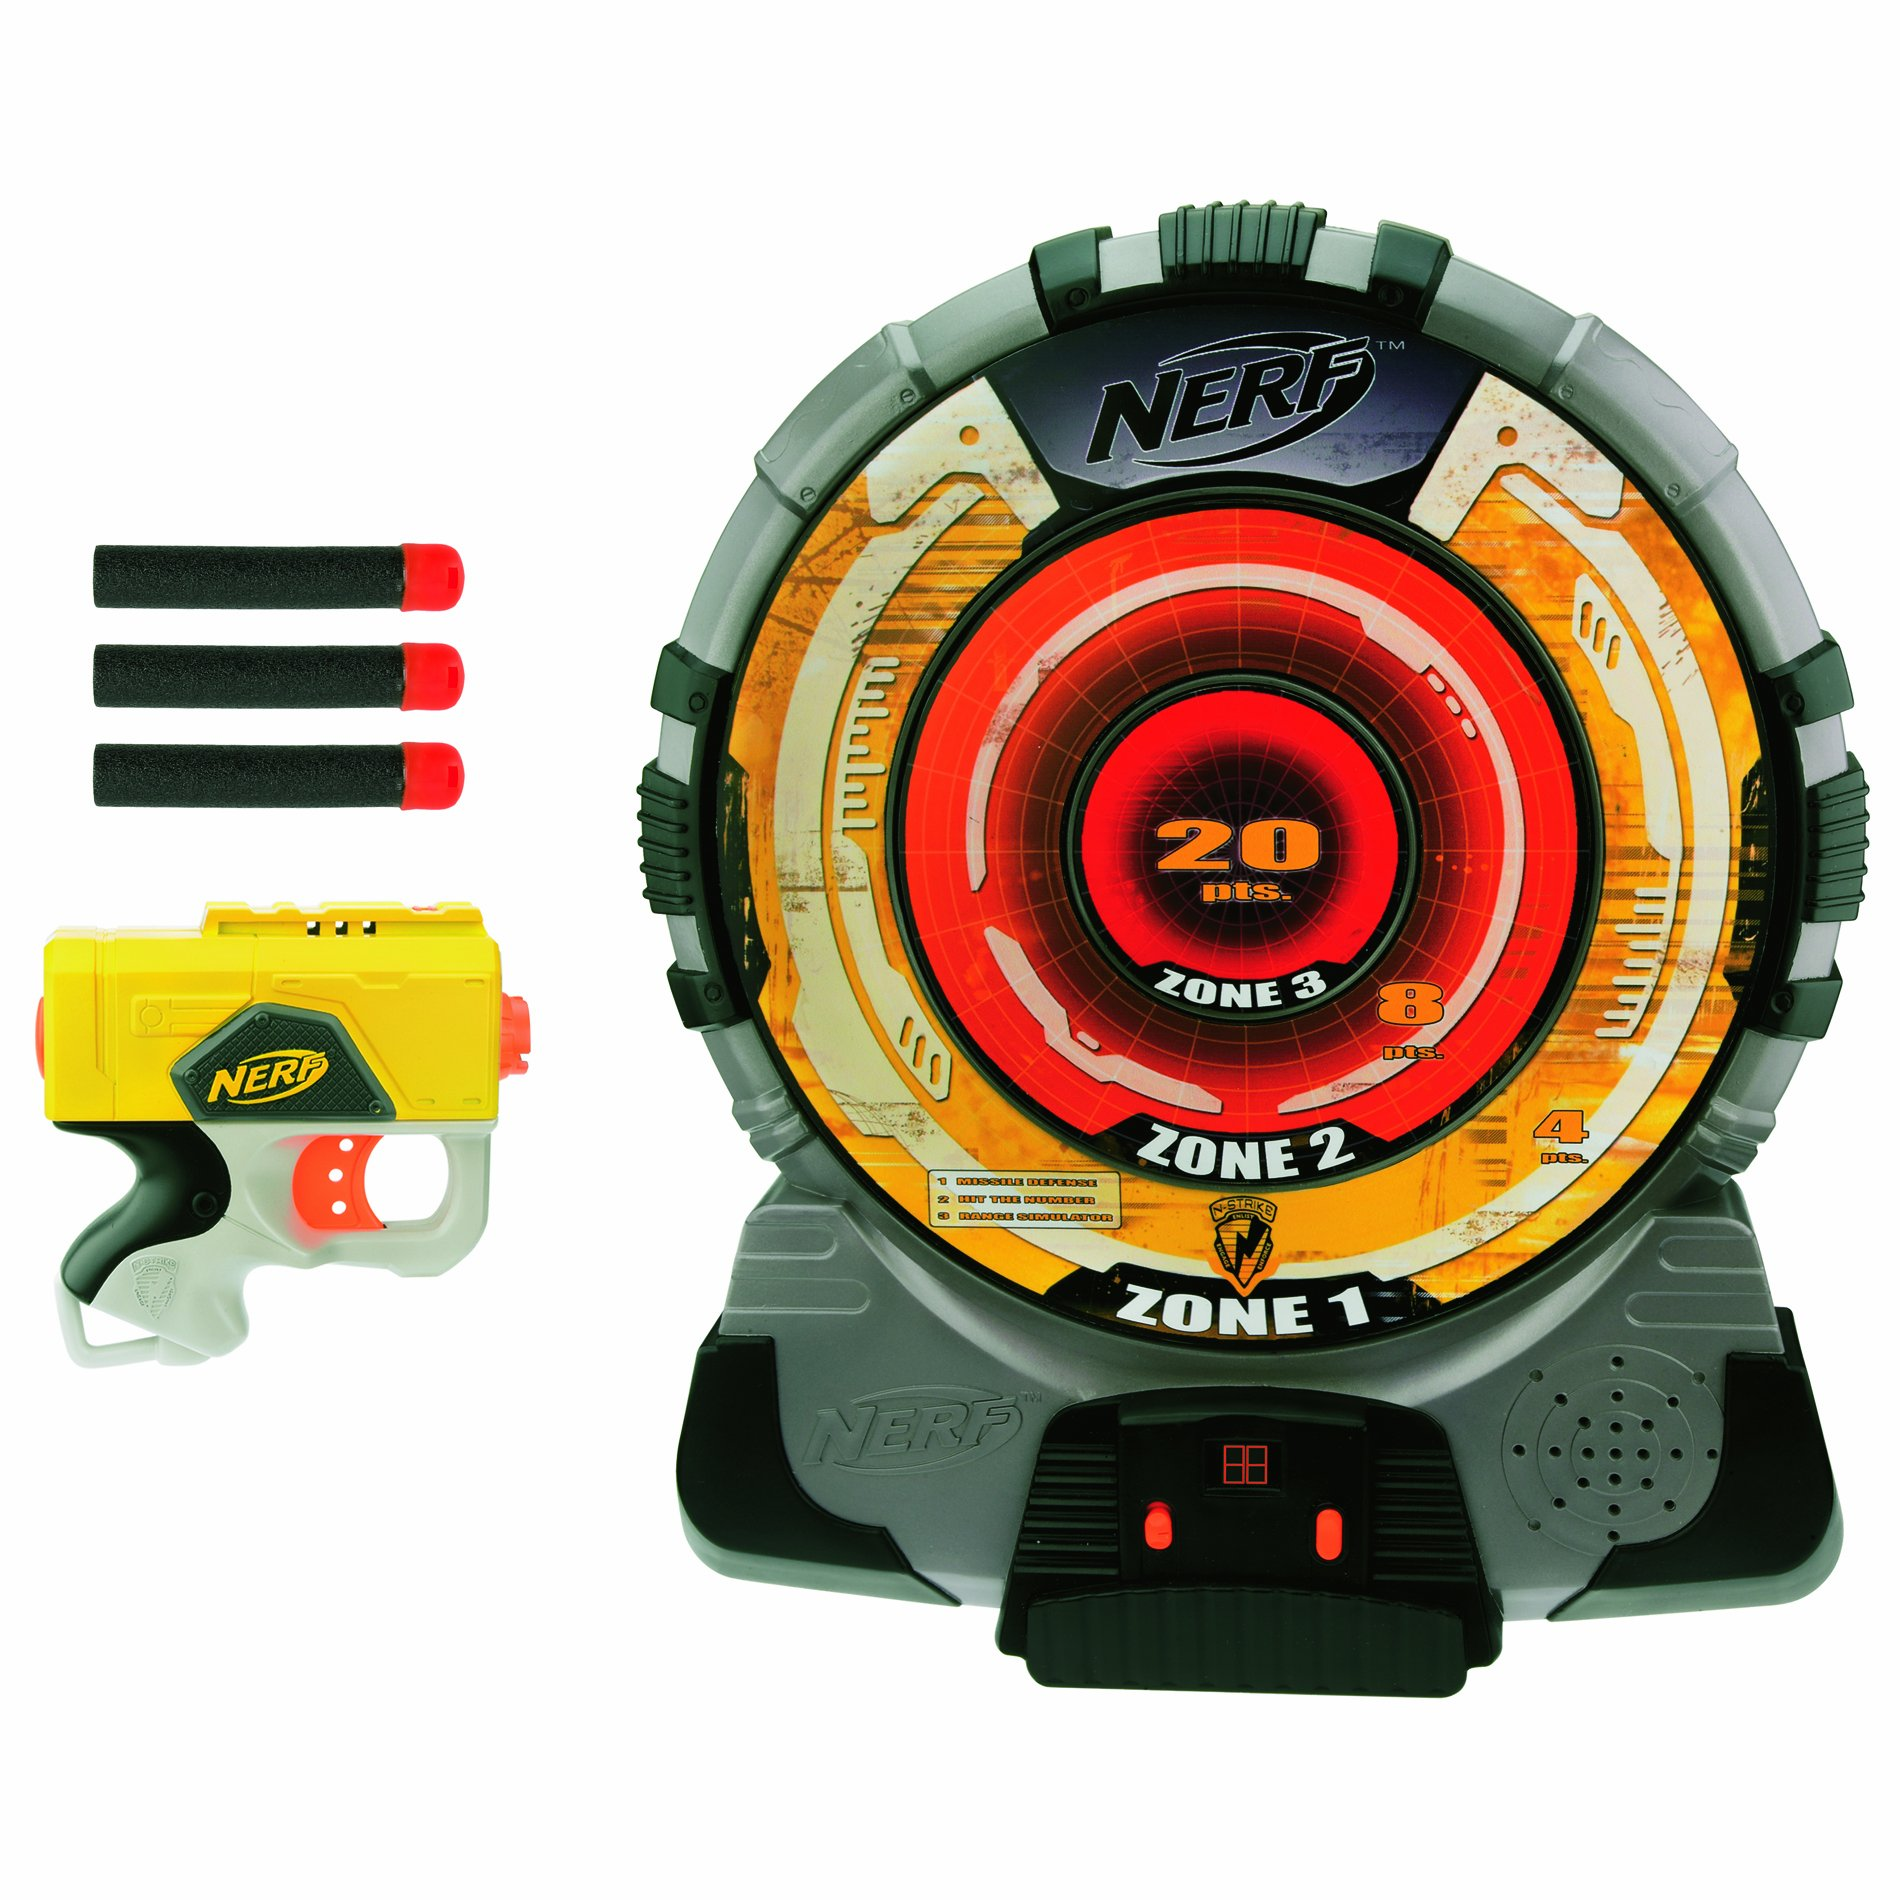 Buy Nerf Target Set Now!